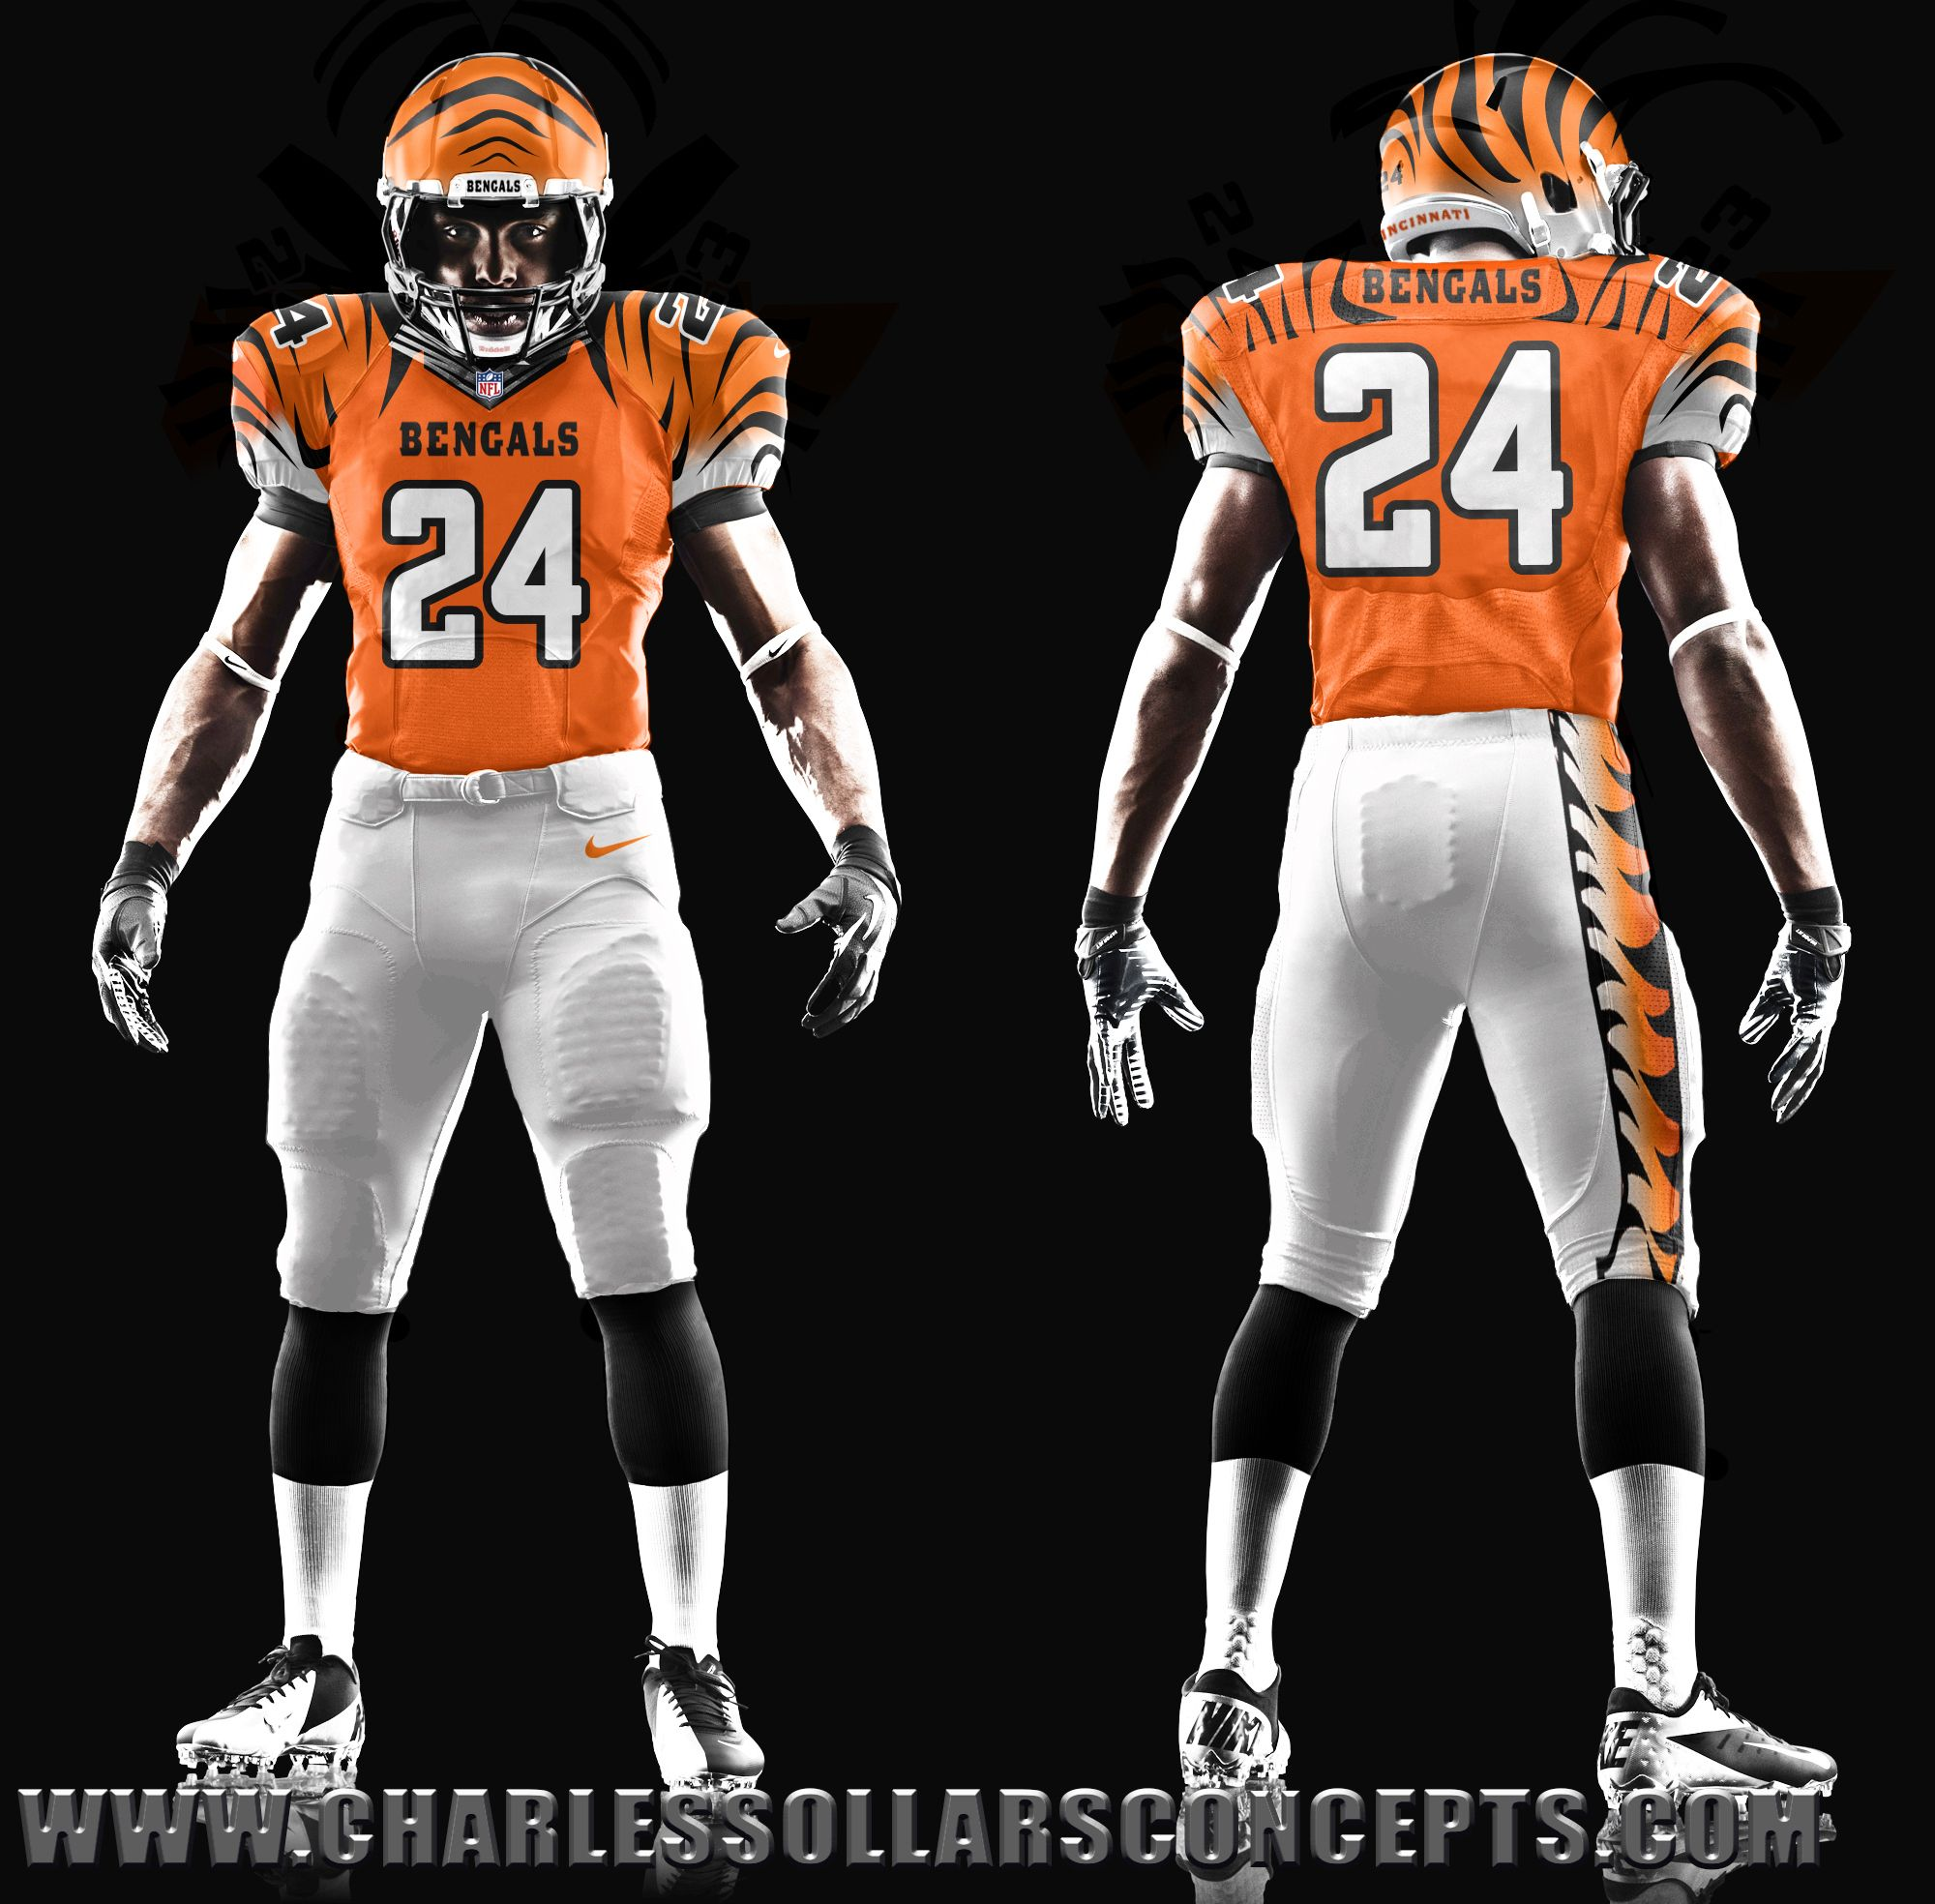 Cincinnati Bengals Concepts Orange Nfl outfits, Steelers